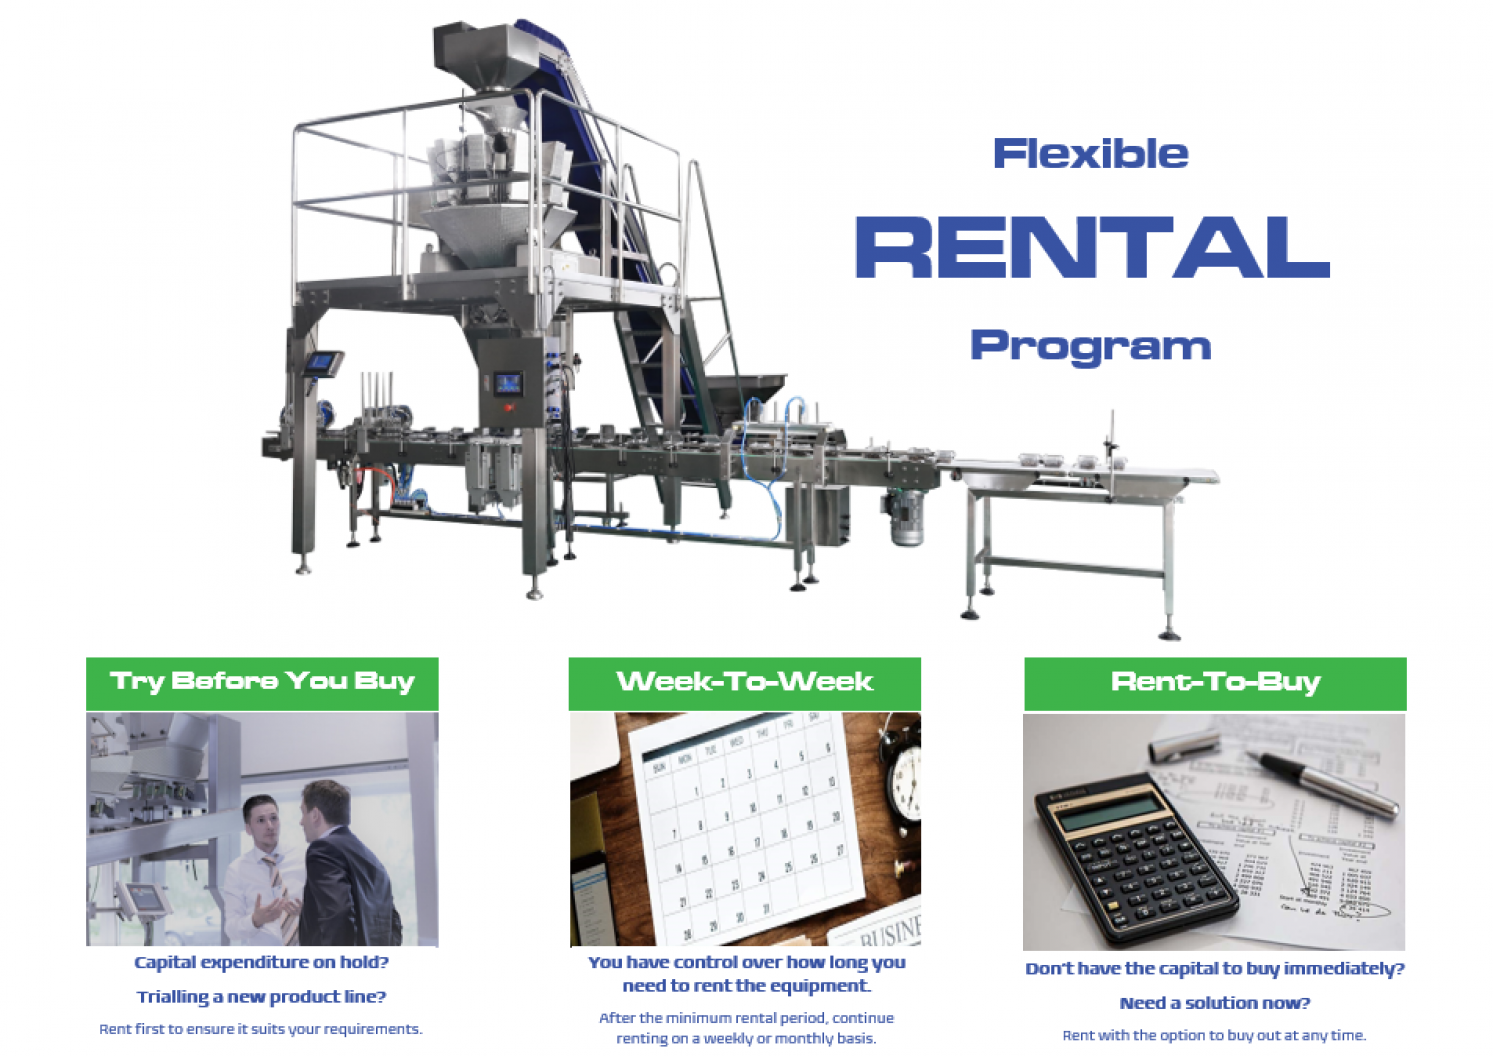 Proquip Solutions Flexible Rental Program for Process and Packaging Equipment